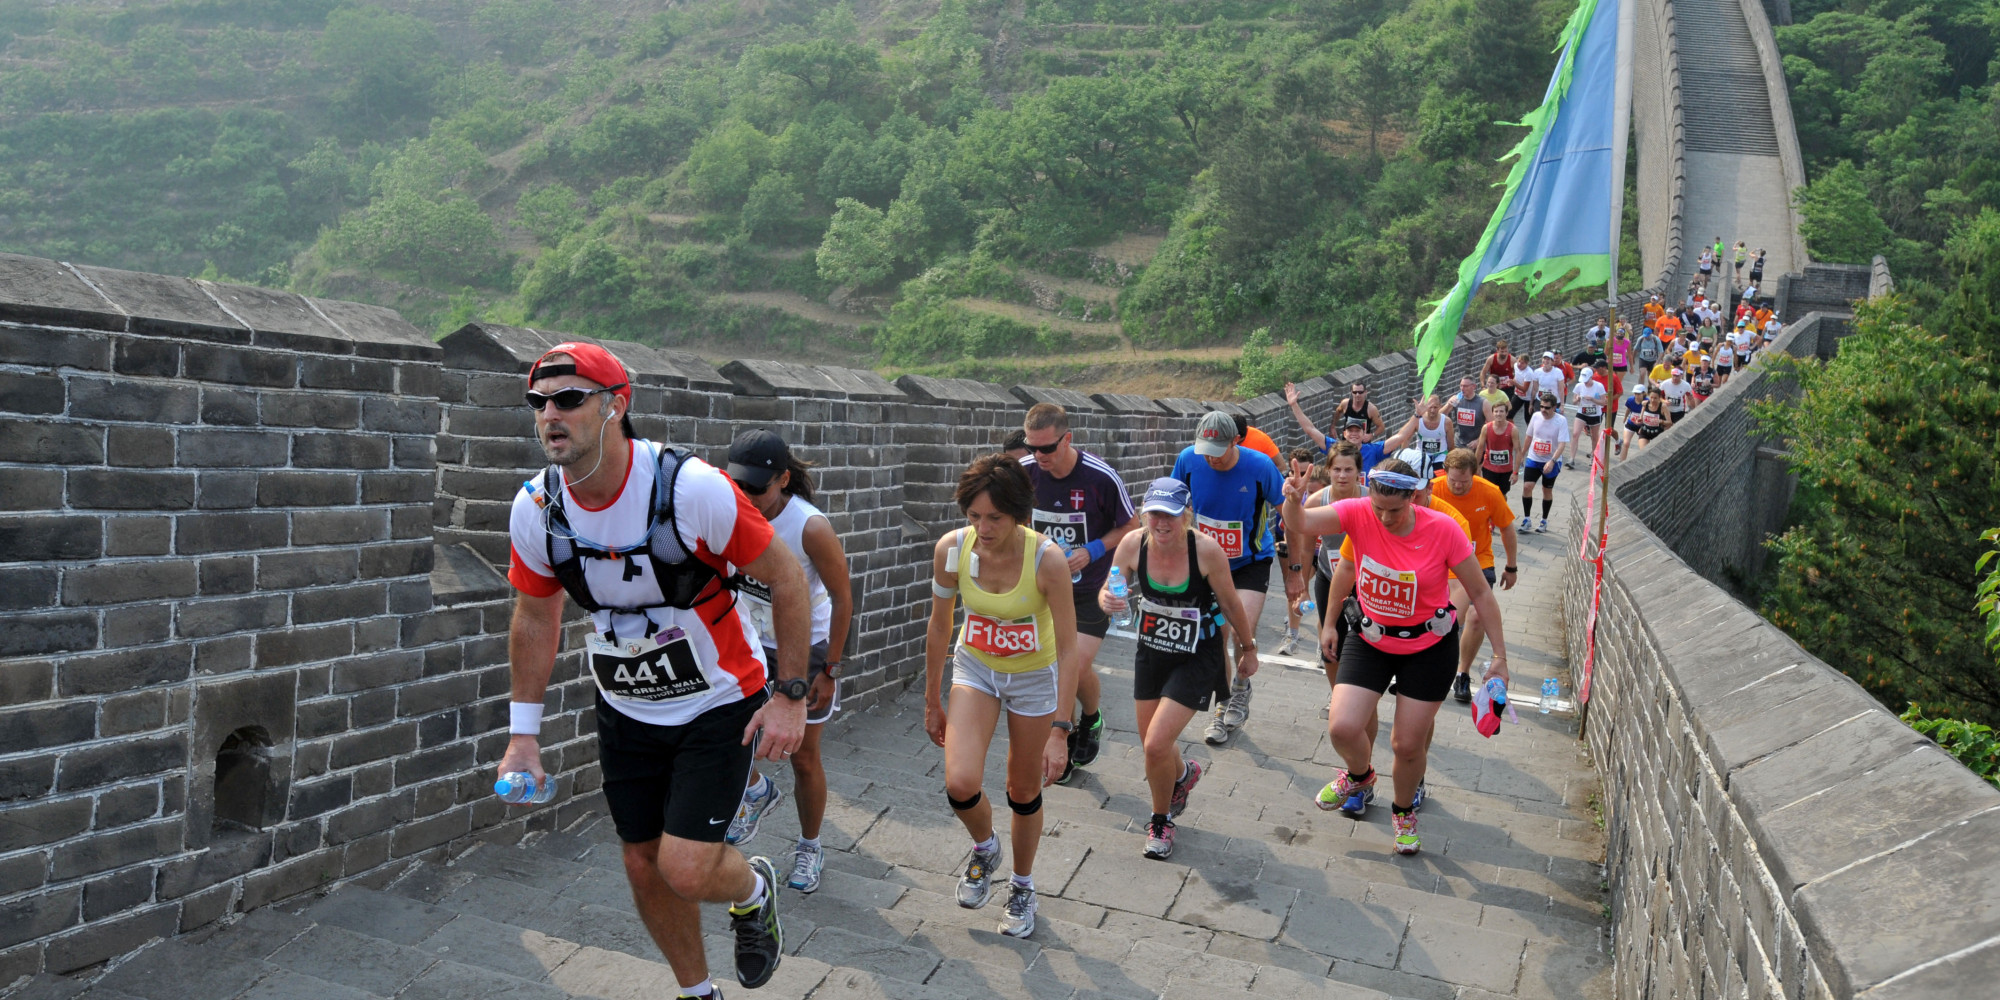 A Marathon, on the Great Wall? Welcome to China!